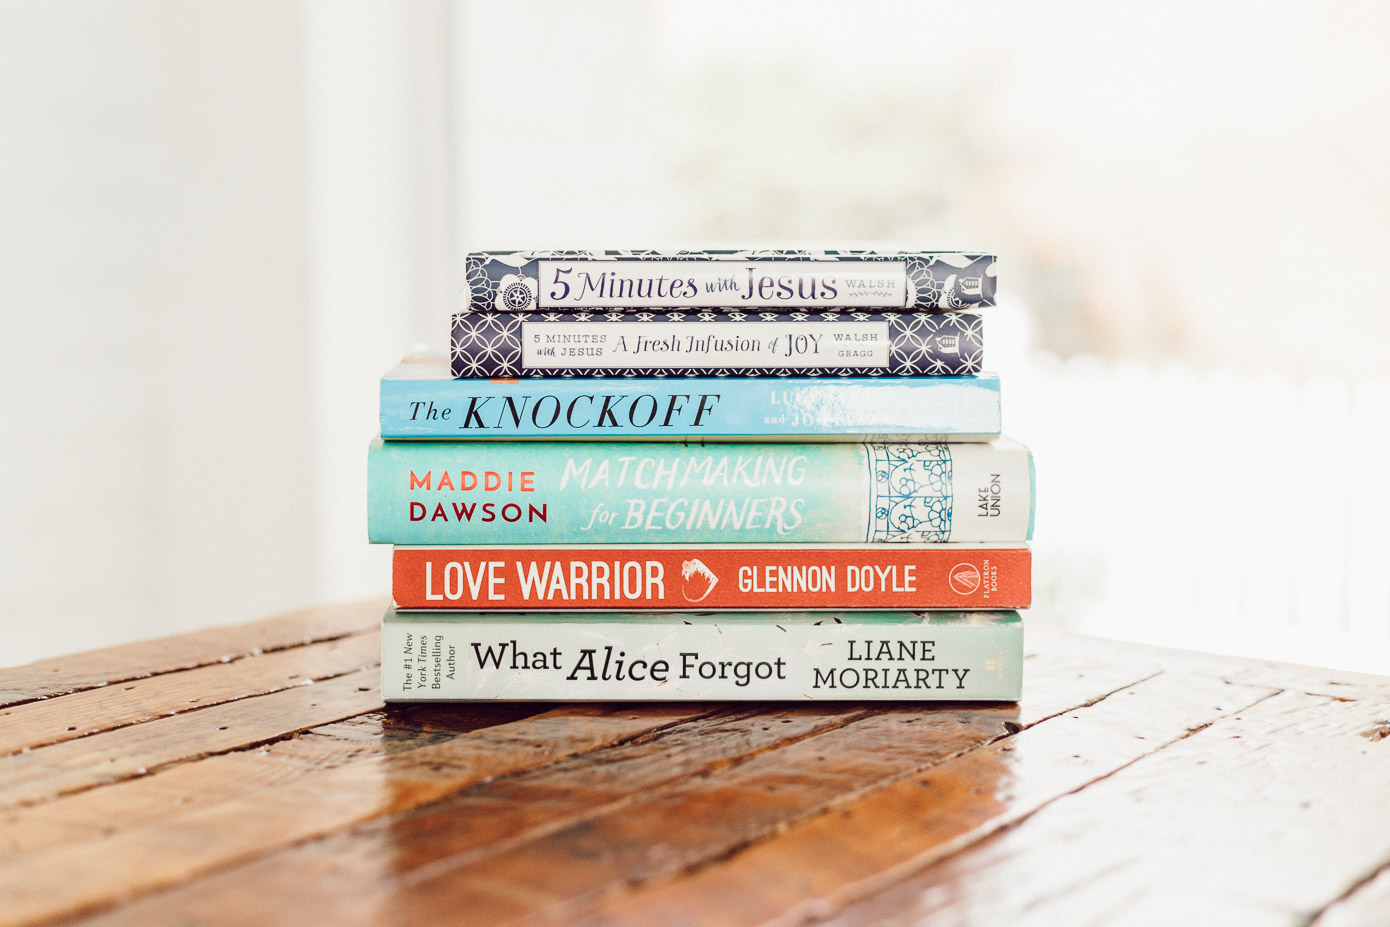 Louella Reese Summer Reading List | Light Summer Reads and 5-Minute Morning Devotionals